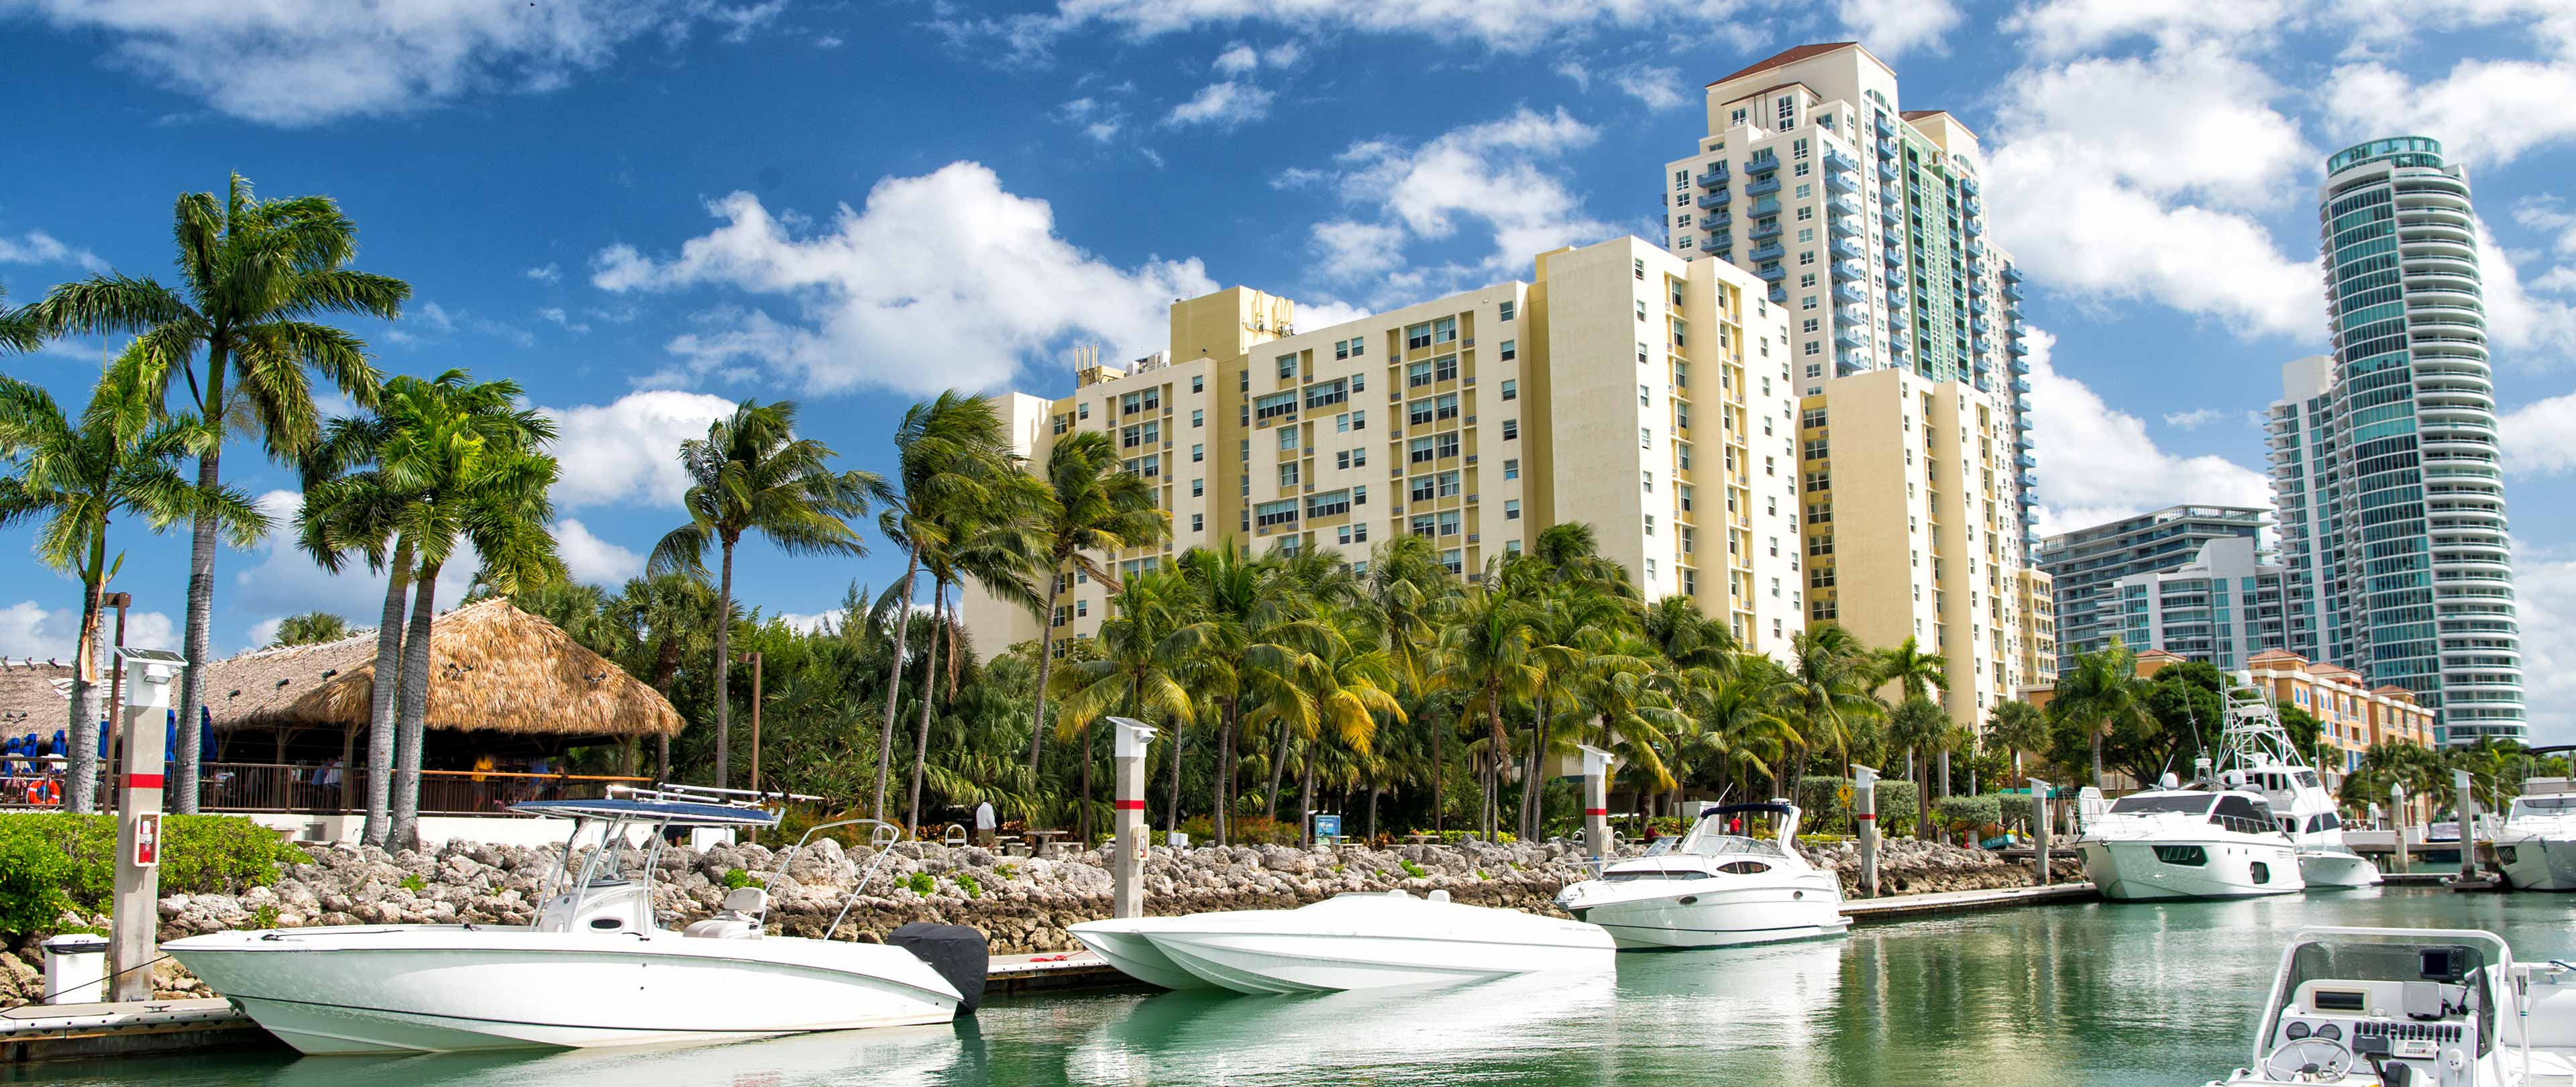 Ways to Experience Miami on a Budget